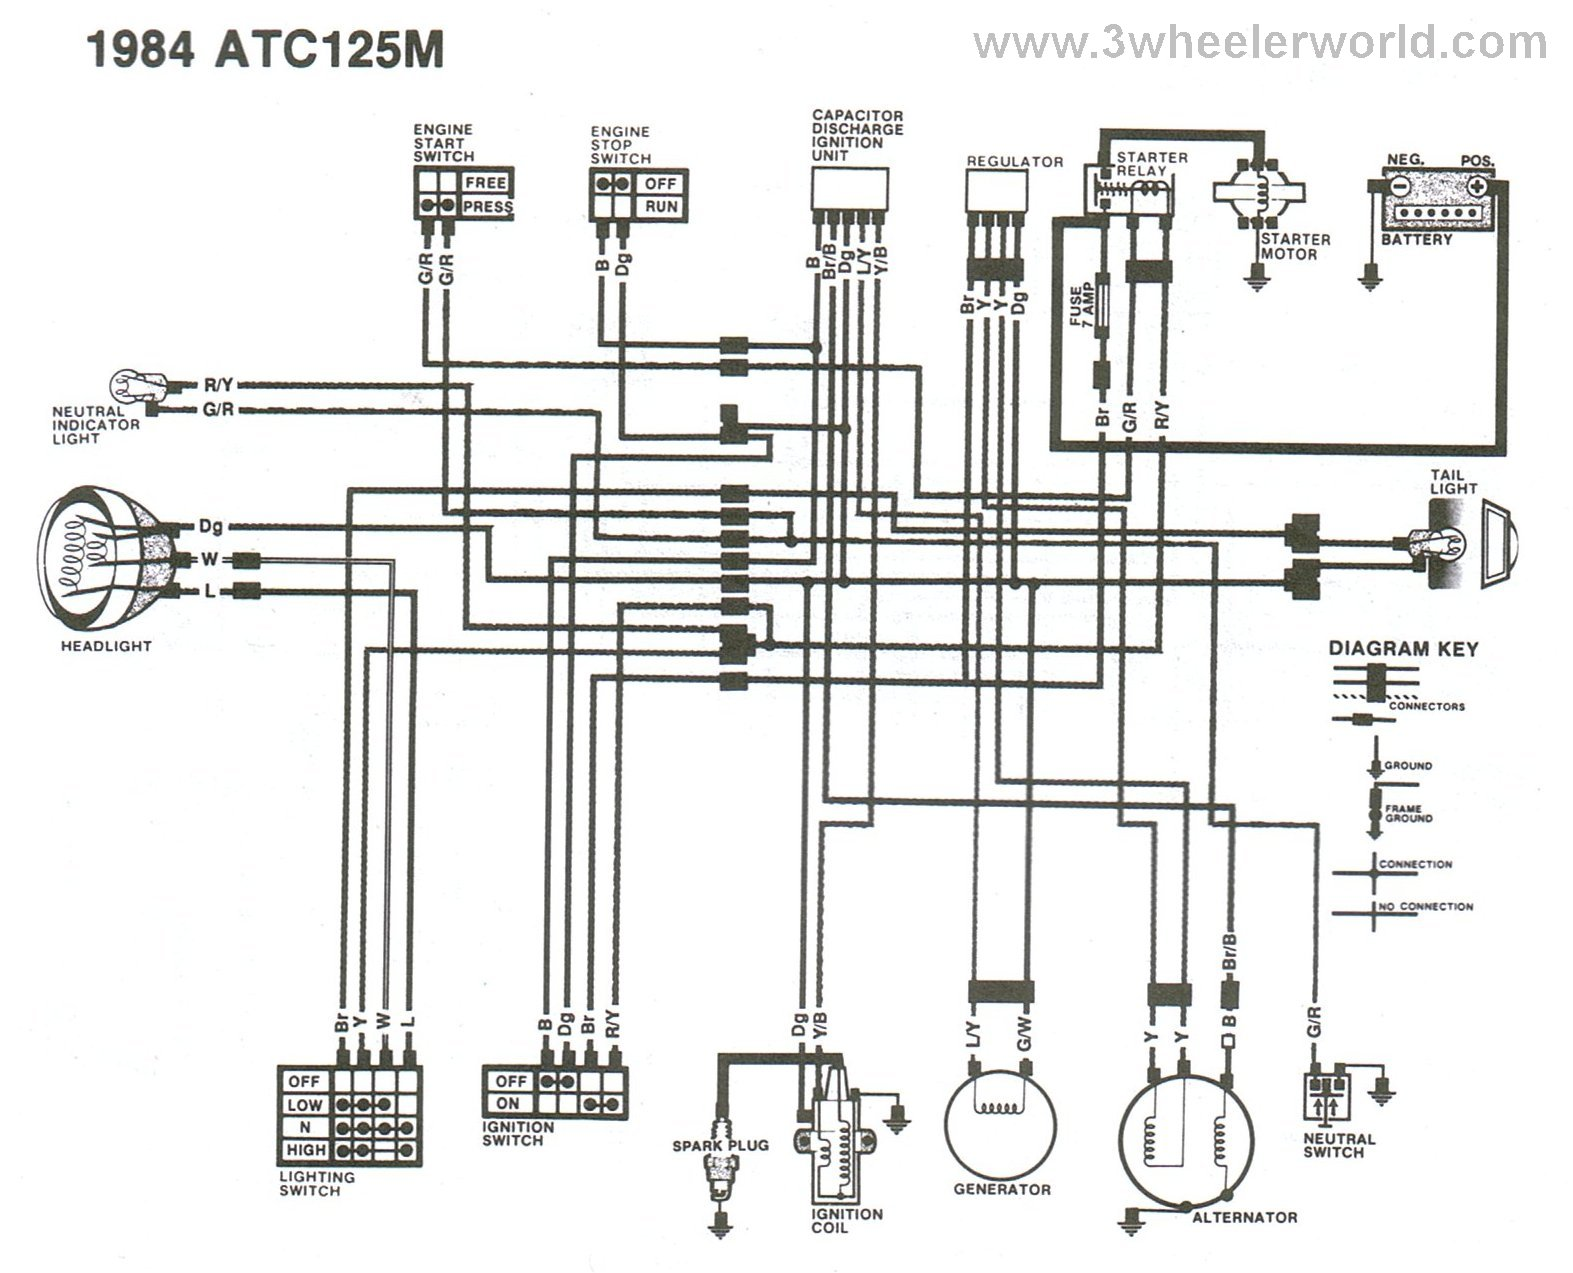 3wheeler world honda atc wiring diagrams atc125m 1984